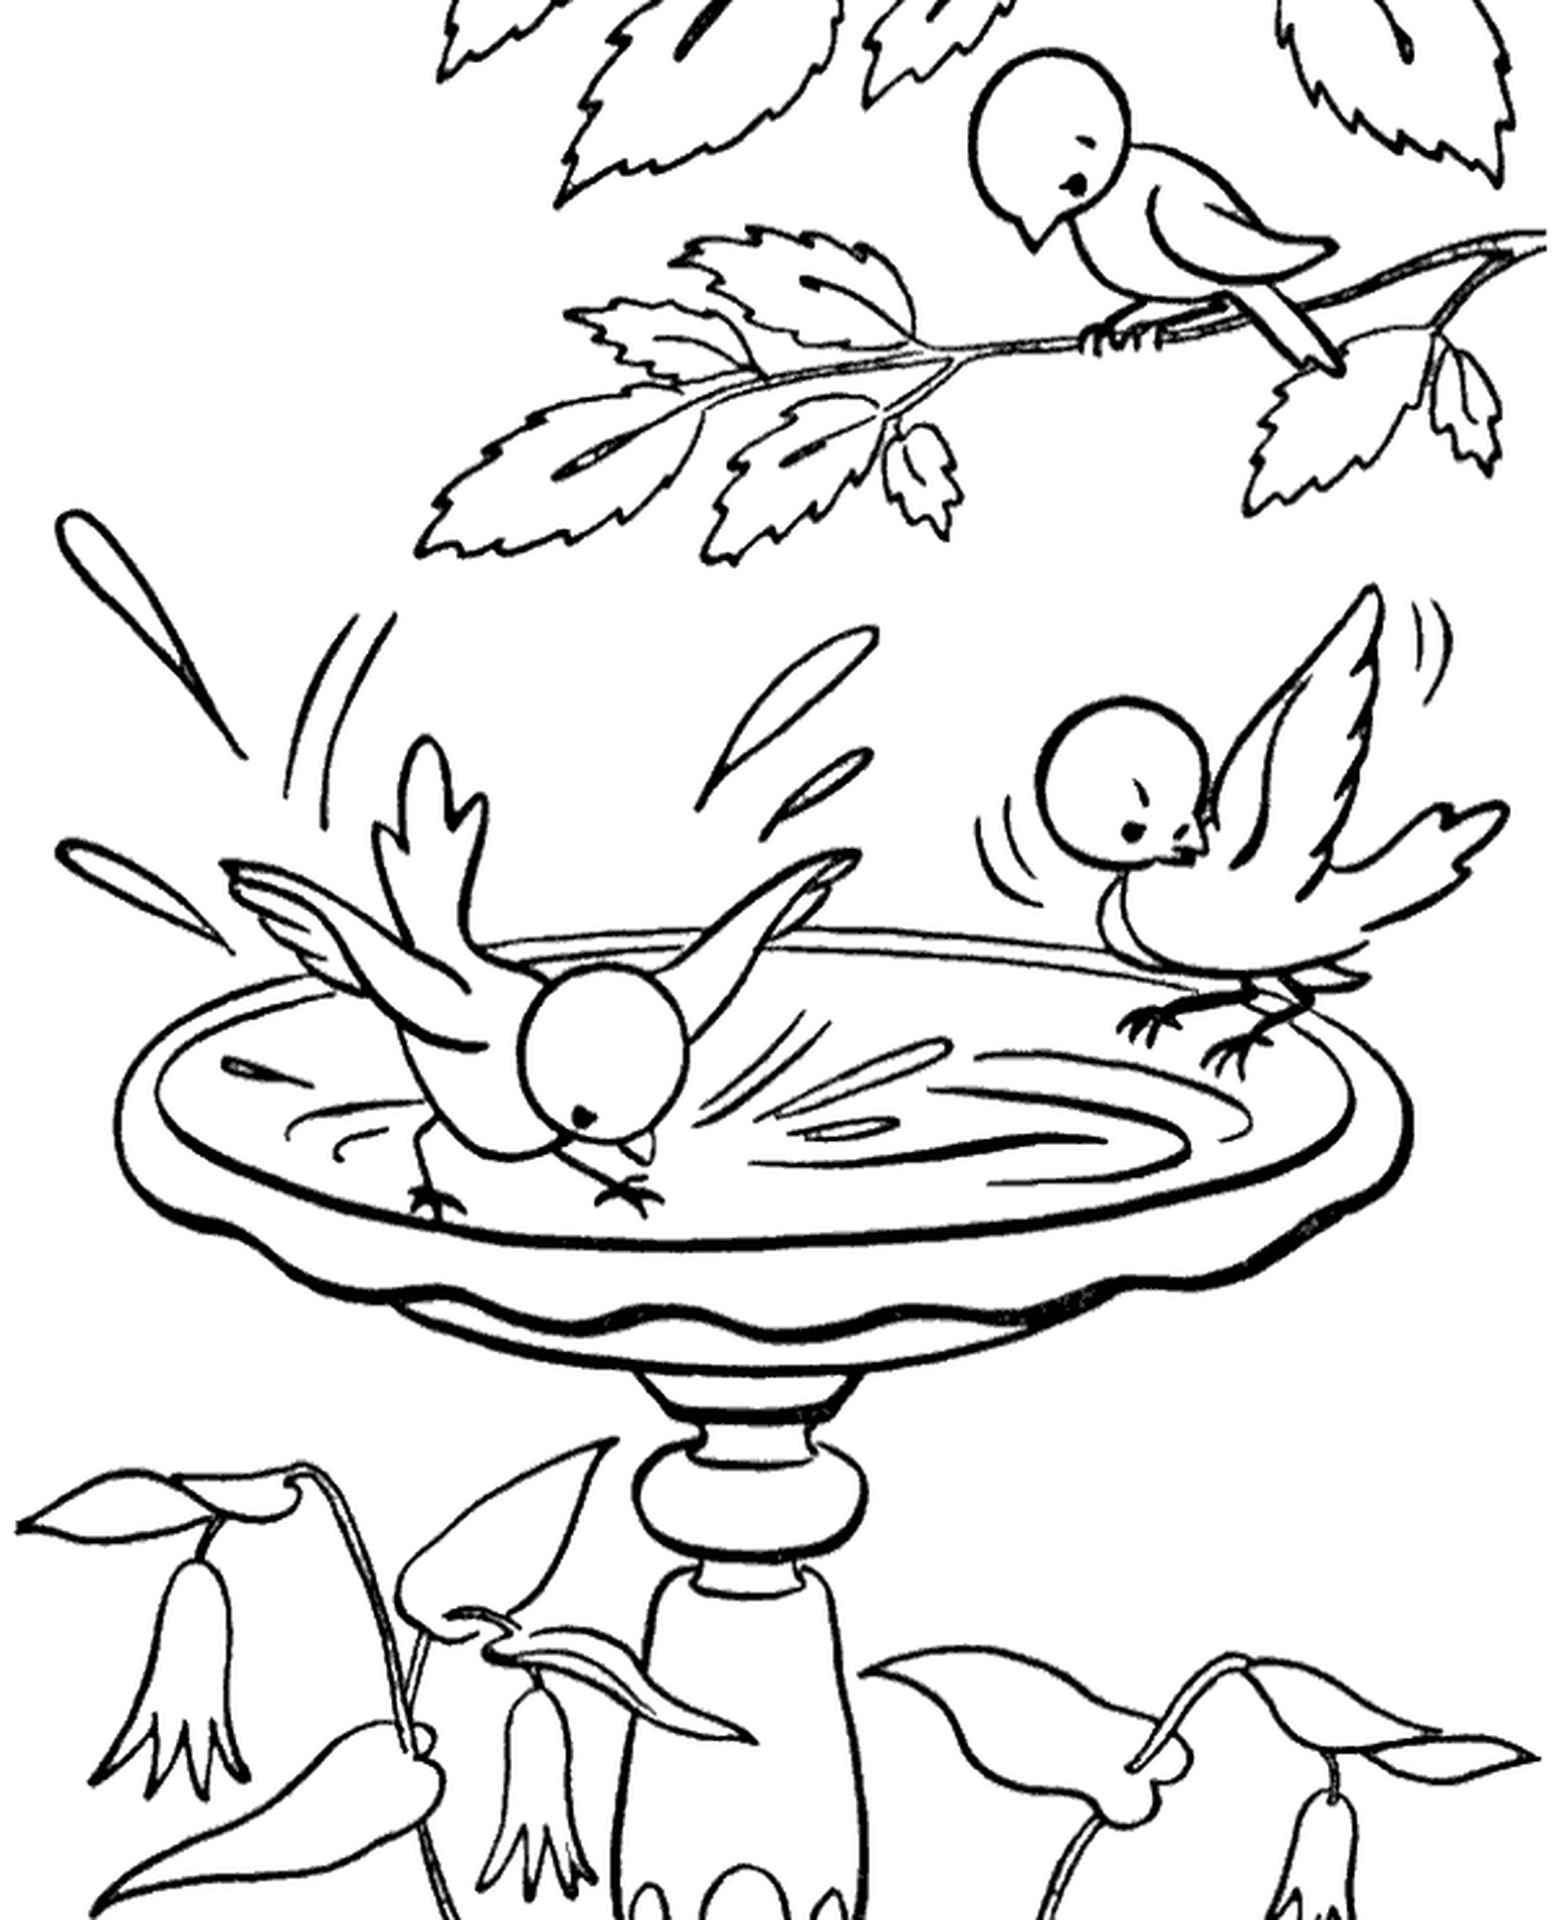 Birds Drinking Water Coloring Sheets